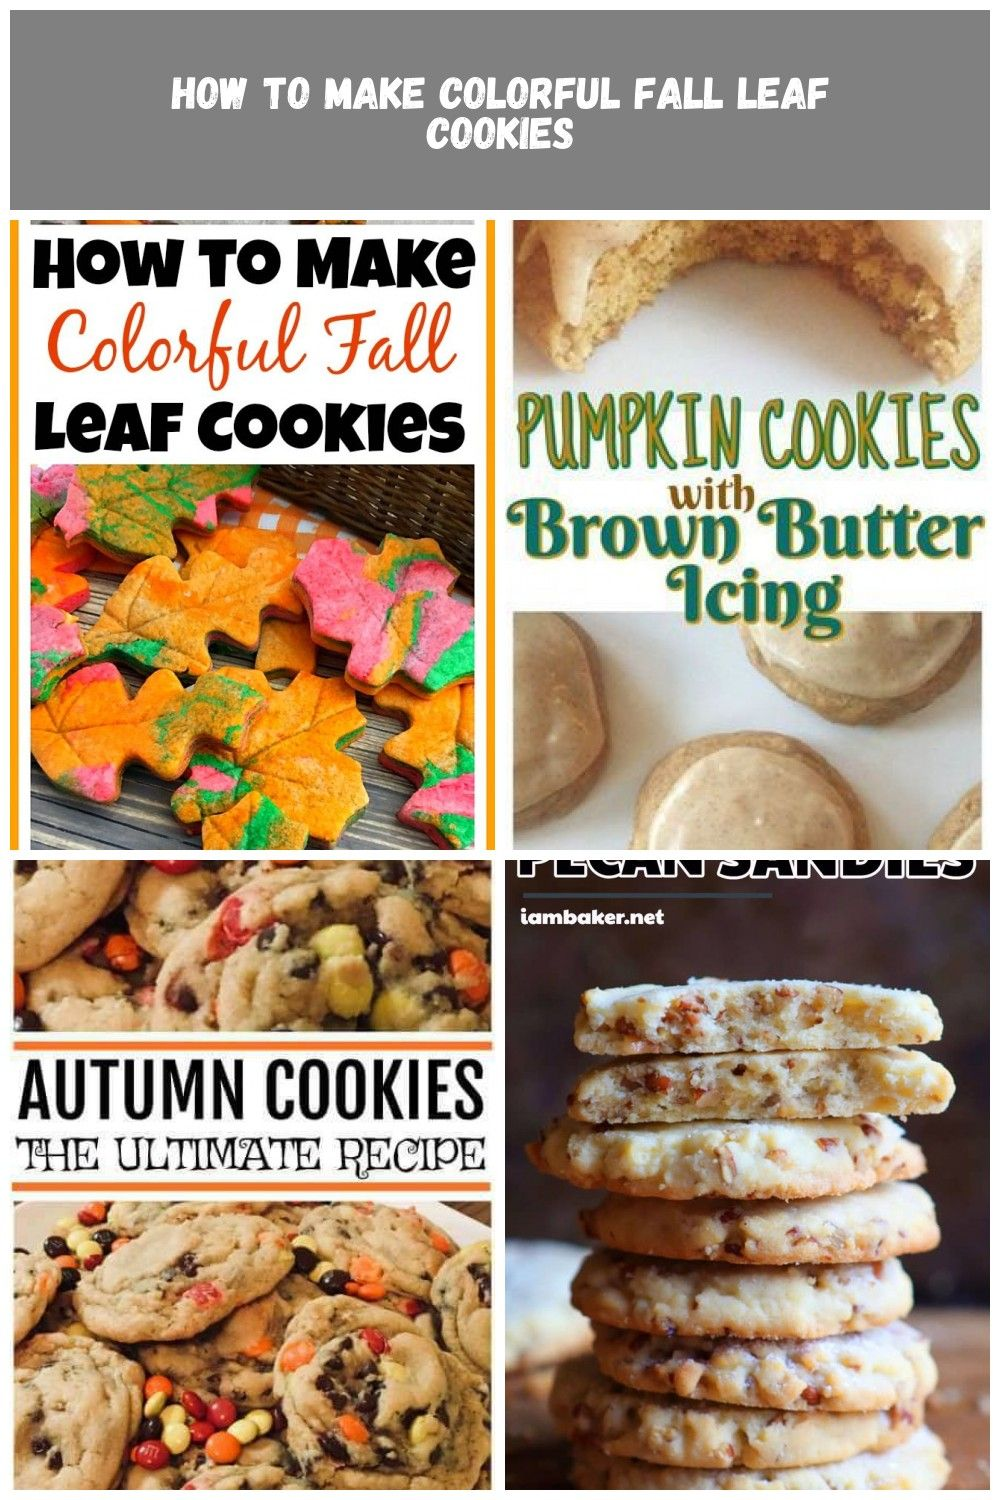 Yummy fall sugar cookies These colorful fall leaf cookies are perfect for parties or just as a fun fall dessert Theyre also really easy to make and kids love to help with...